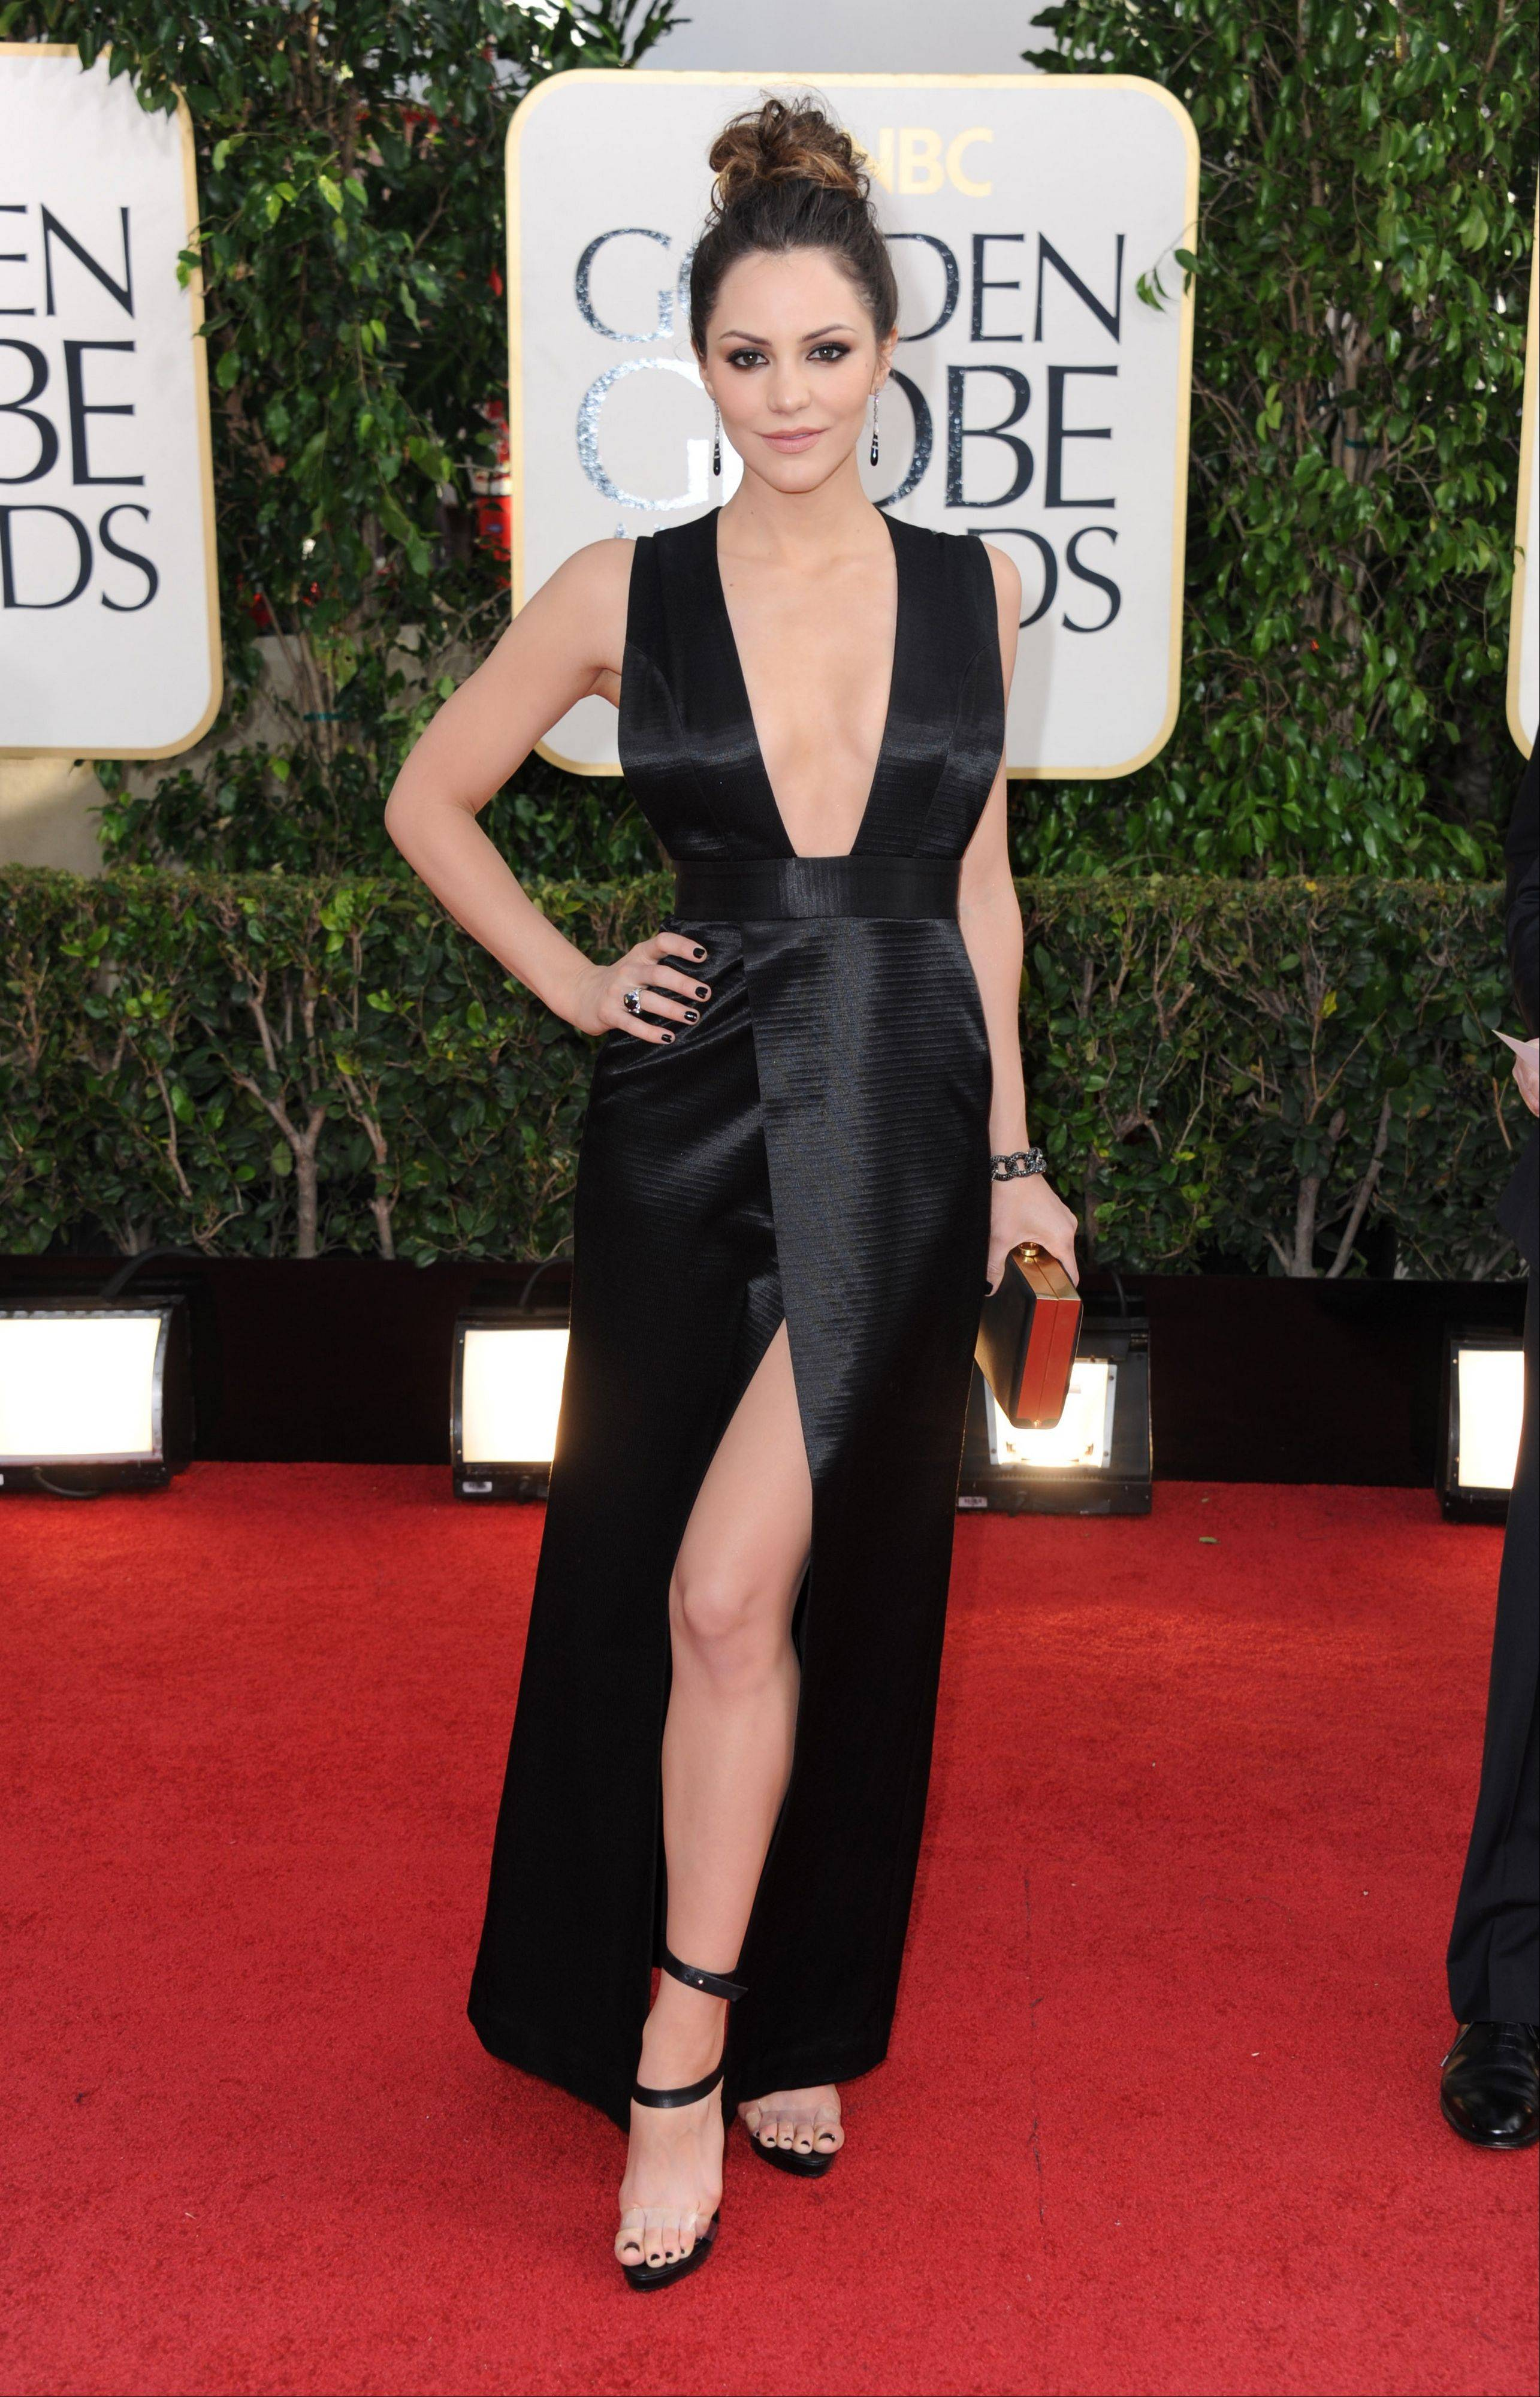 Actress Katharine McPhee arrives at the 70th Annual Golden Globe Awards at the Beverly Hilton Hotel on Sunday Jan. 13, 2013, in Beverly Hills, Calif.